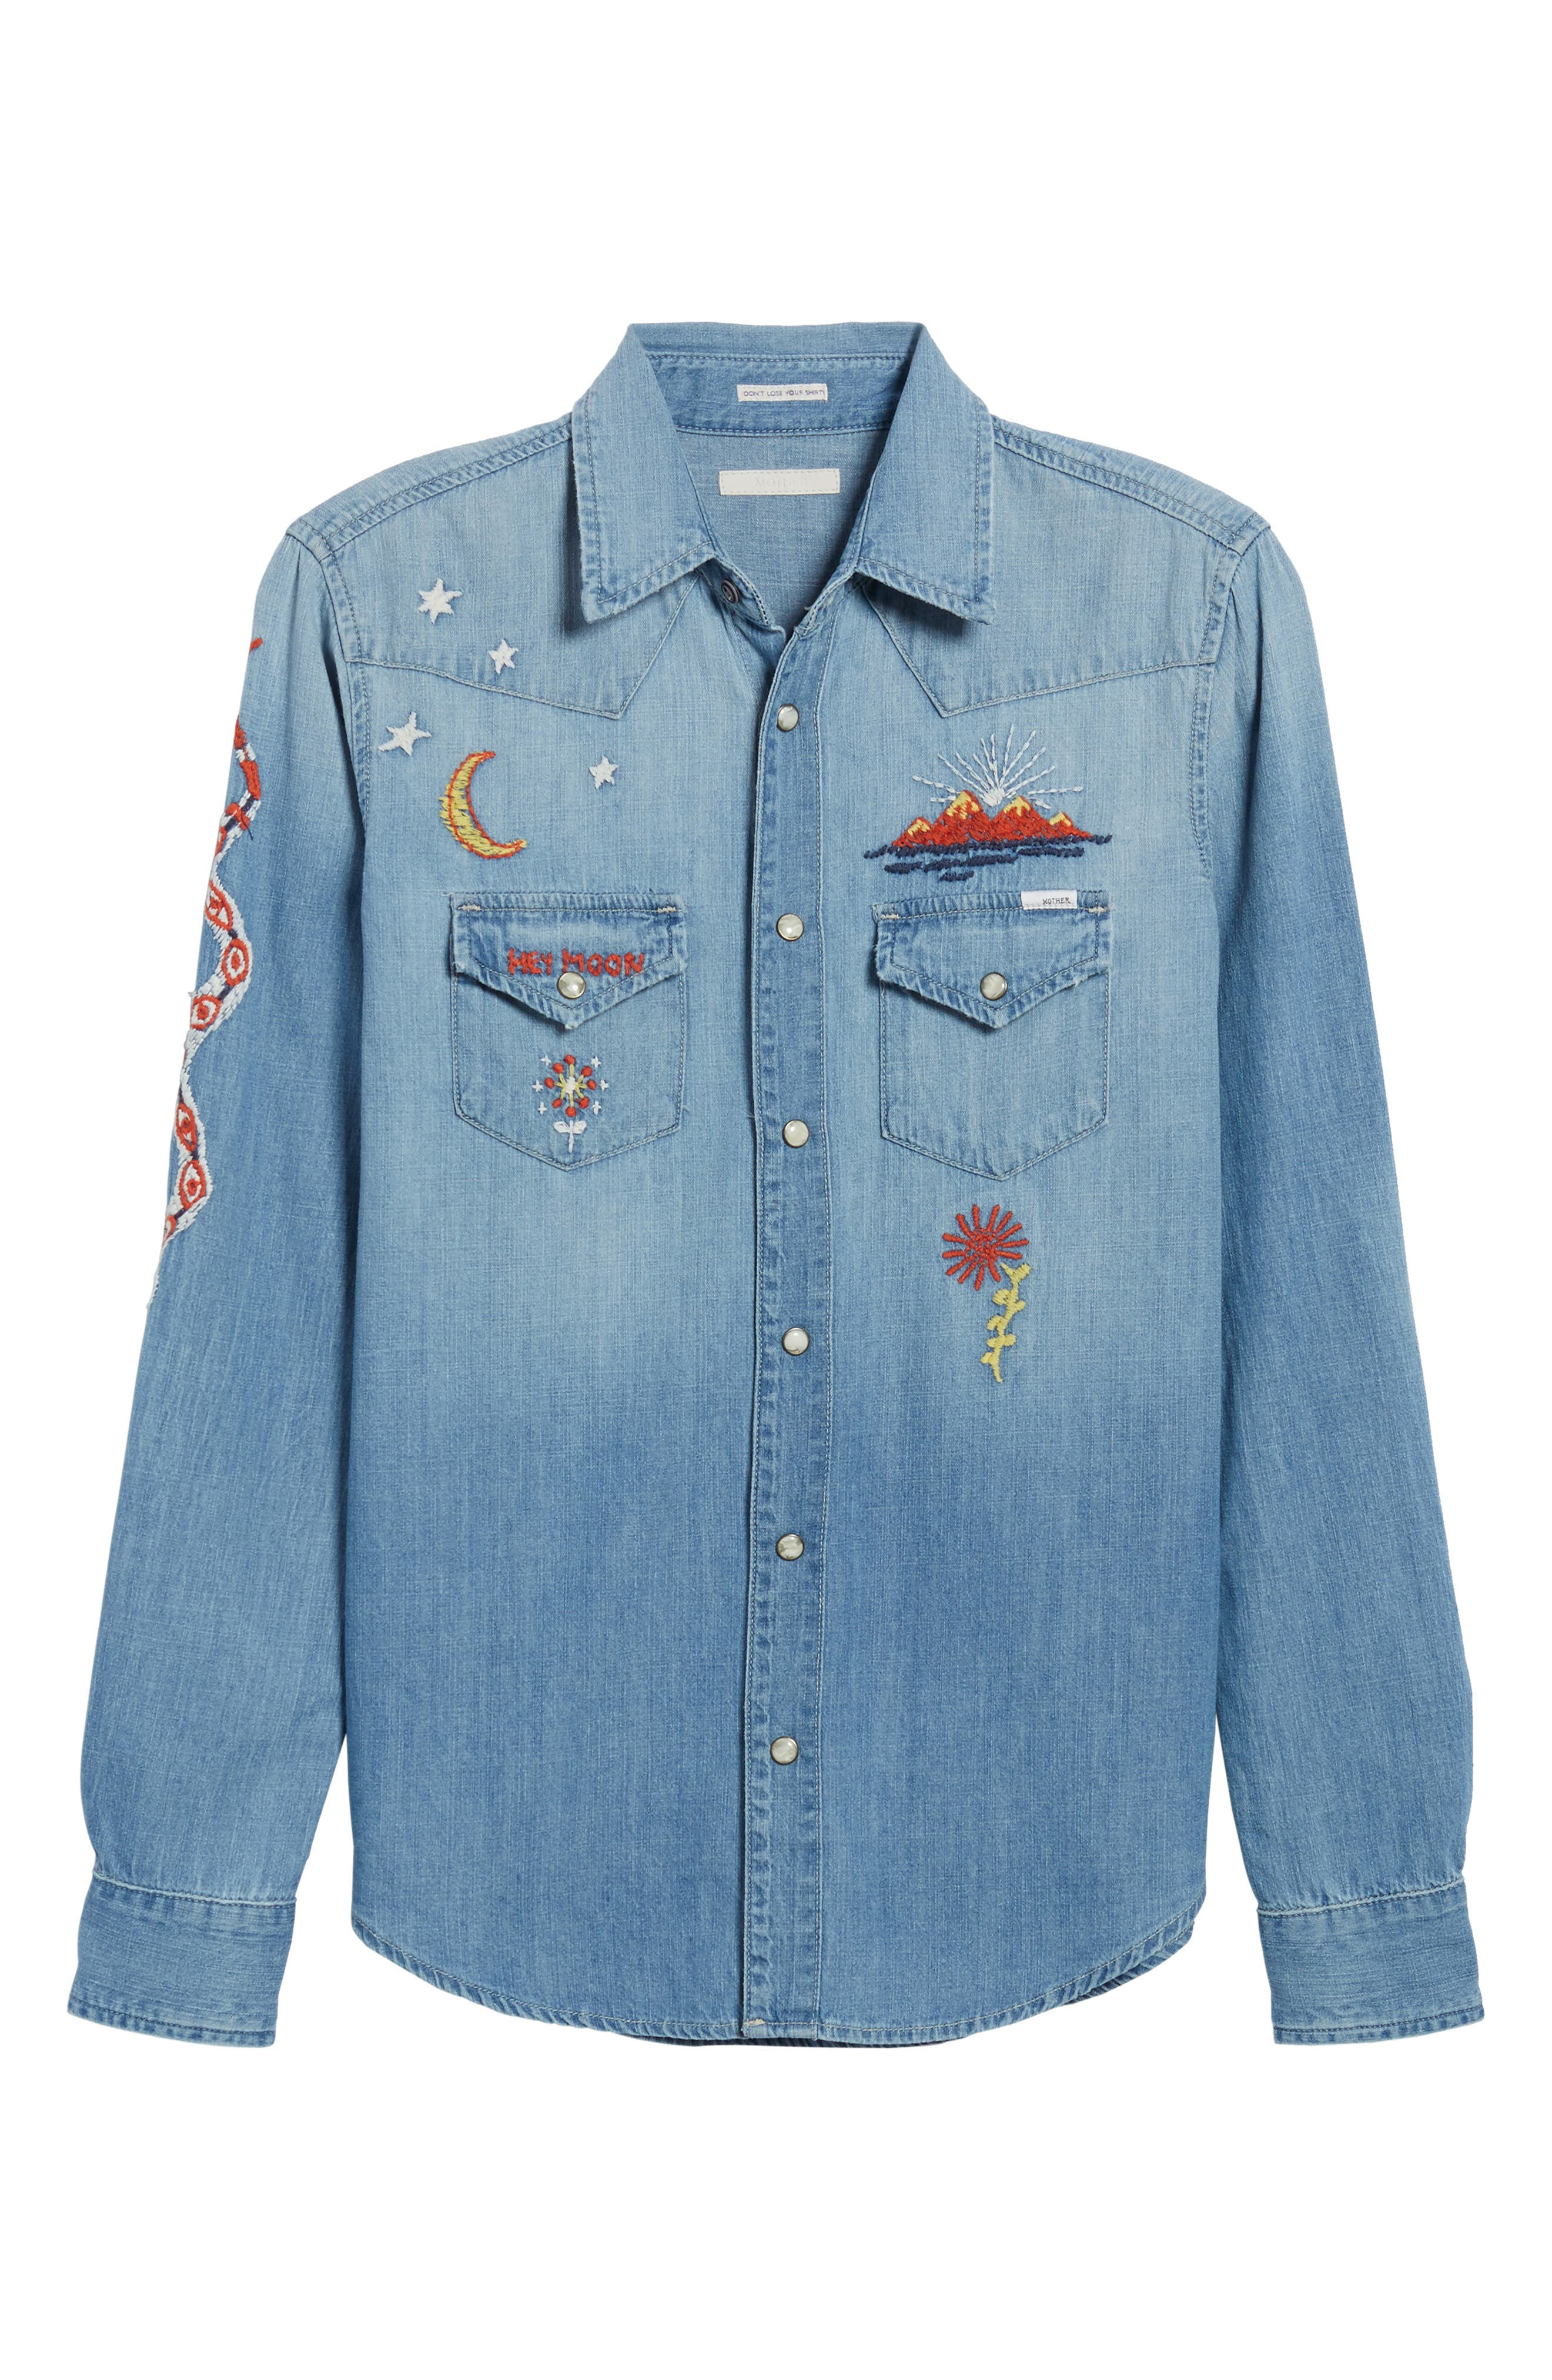 All My Ex's Embroidered Denim Shirt,                             Alternate thumbnail 7, color,                             400